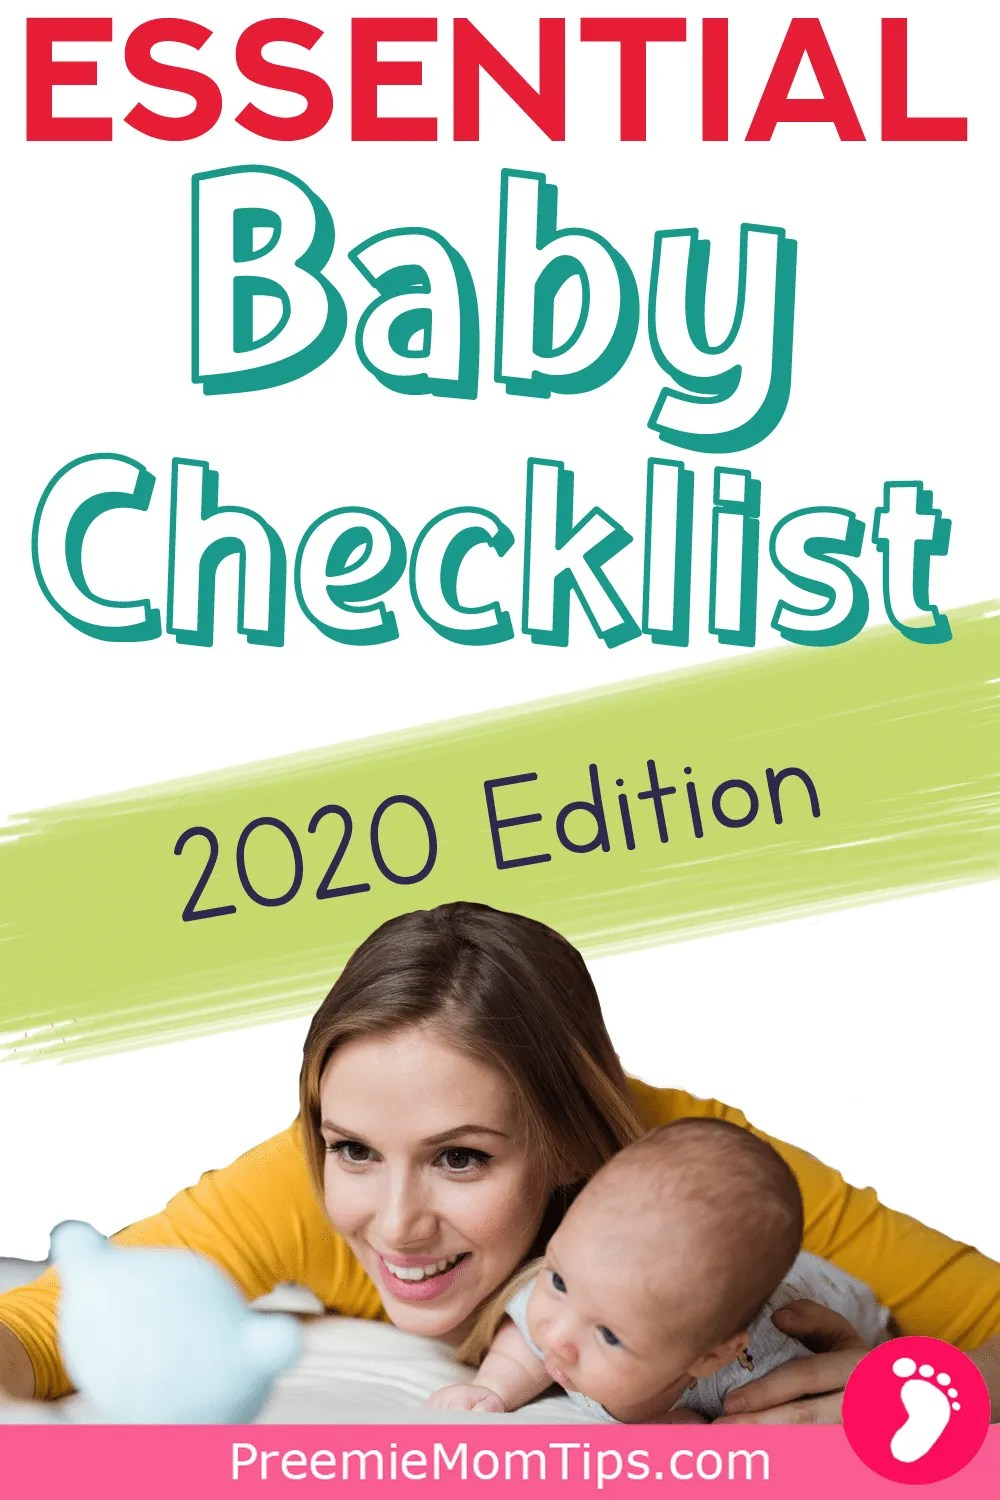 Don't miss out on the best and essential baby products for your new baby! Start your baby registry the right way with this checklist of the absolute essentials.